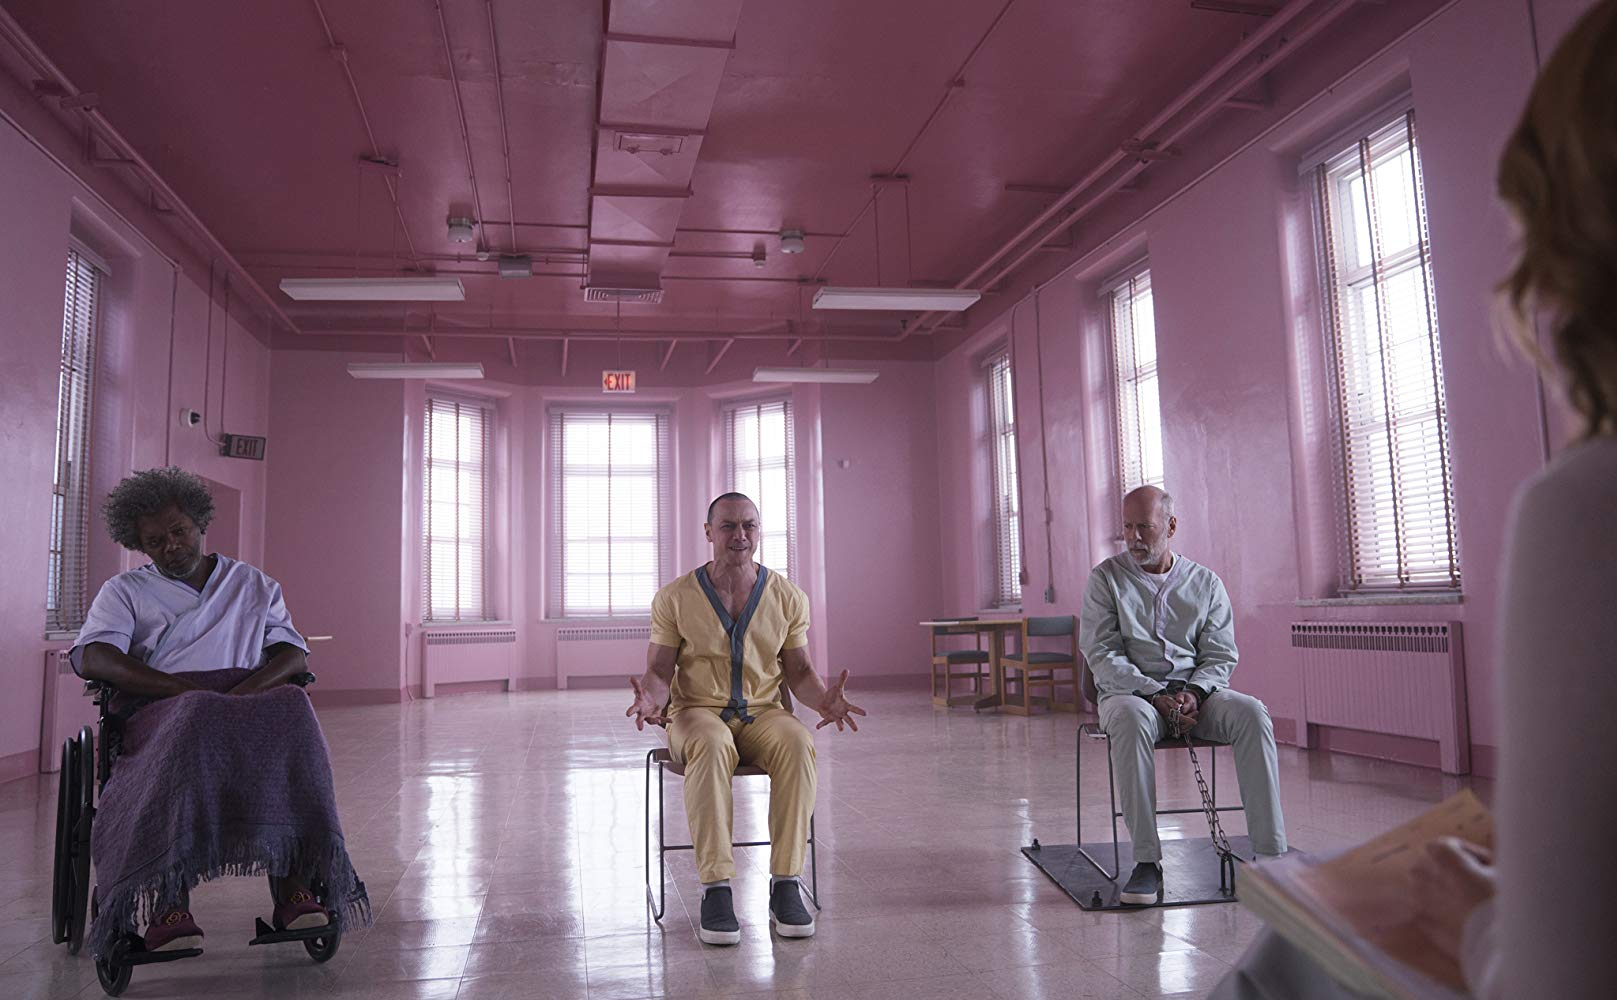 Samuel L. Jackson, Bruce Willis, Sarah Paulson, and James McAvoy in Glass (2019)